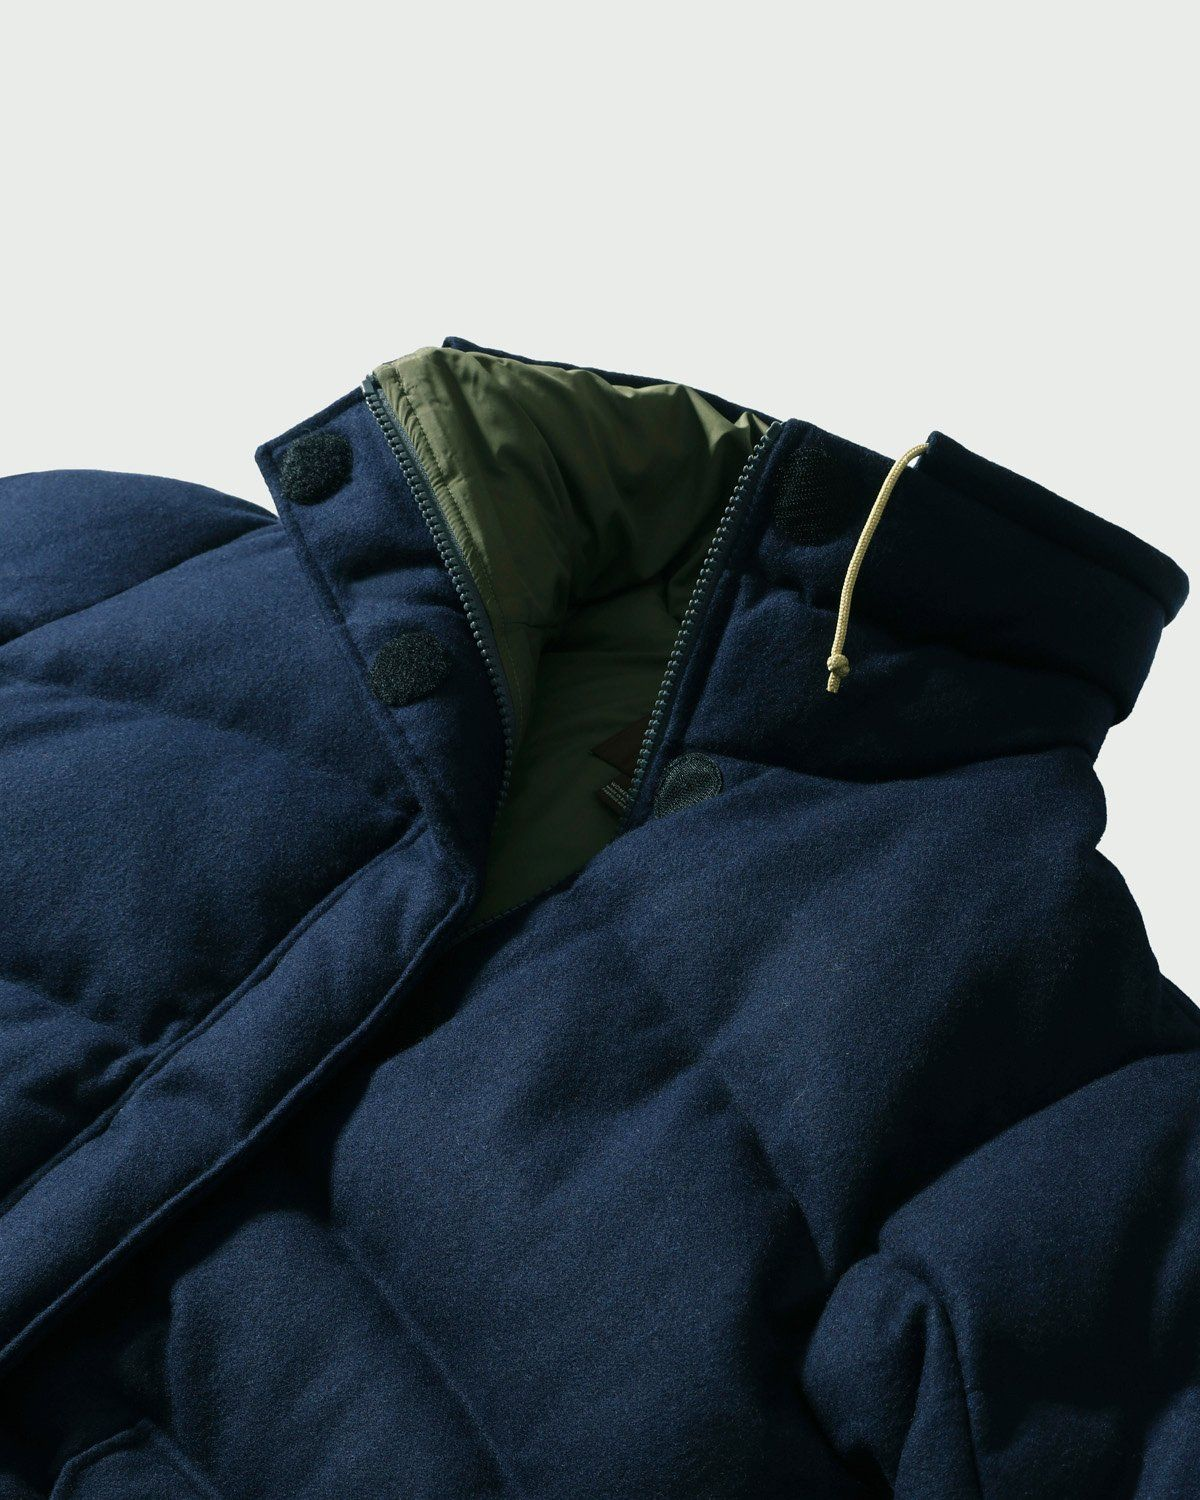 The North Face Brown Label - Larkspur Wool Down Jacket Navy Women - Image 3